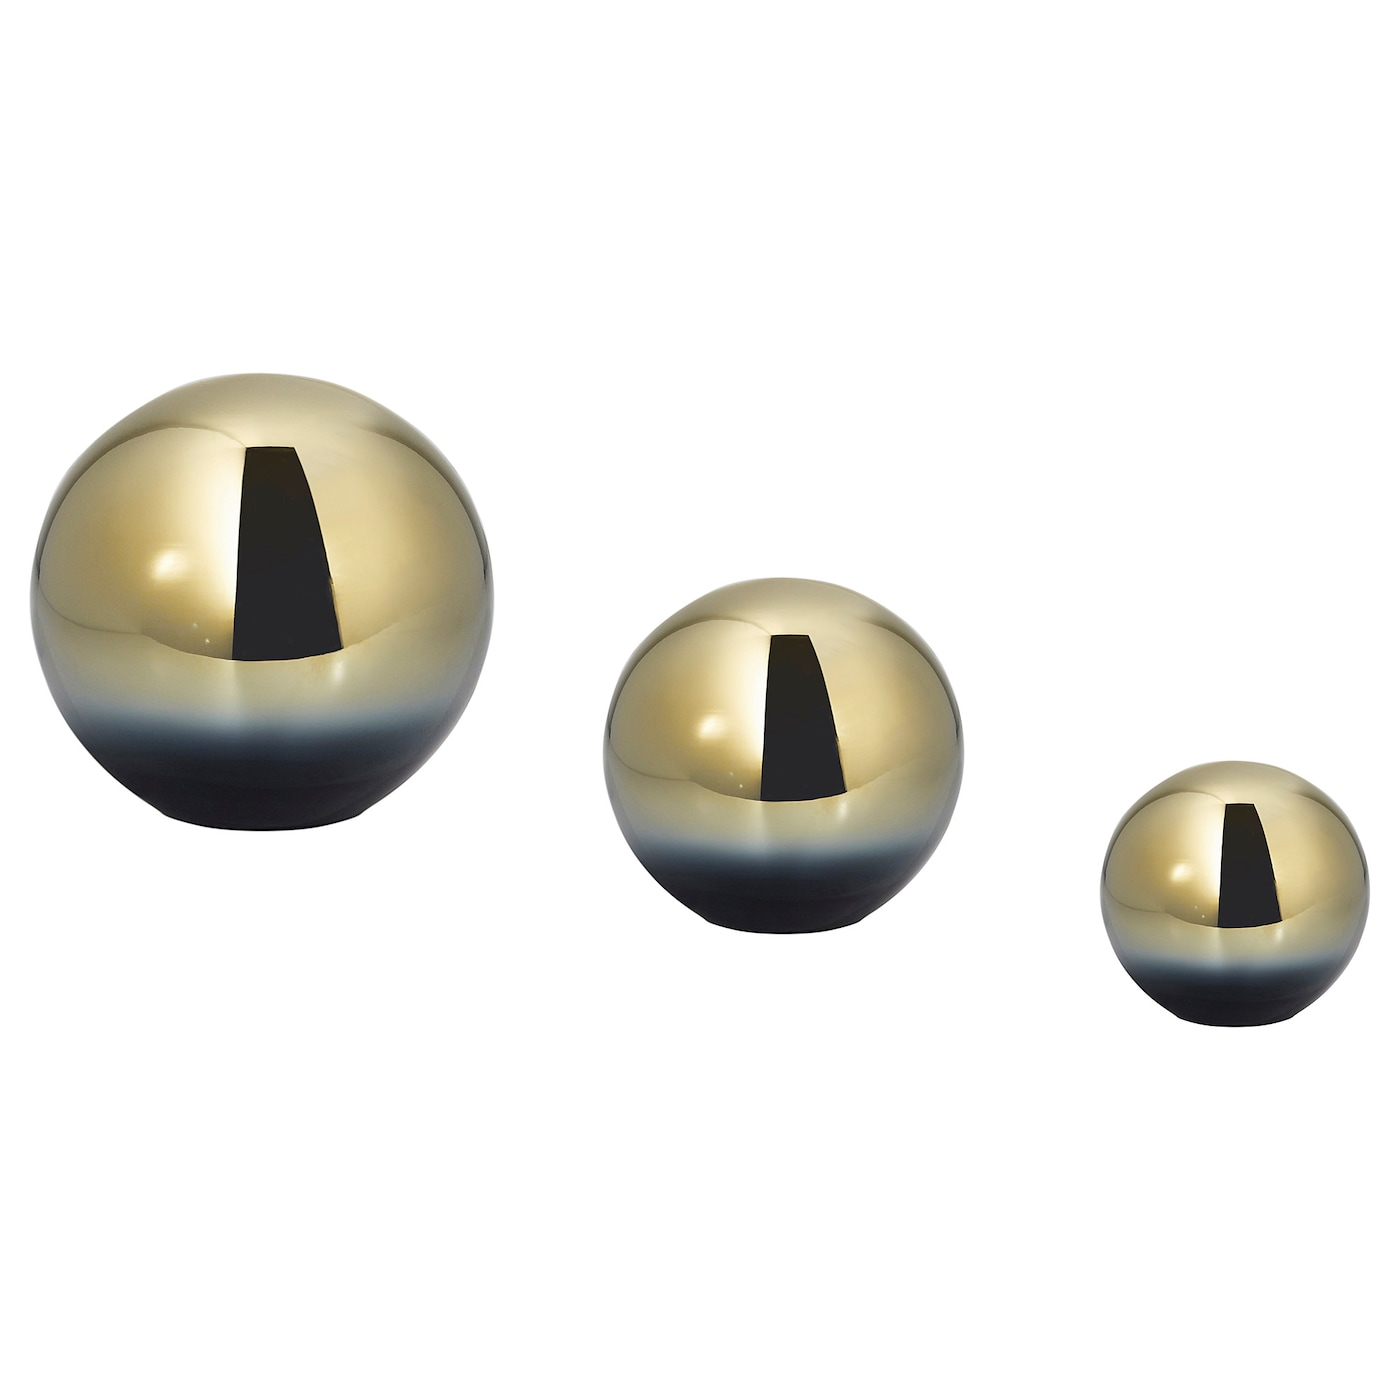 IKEA DAGDRÖM boules décoratives, lot de 3